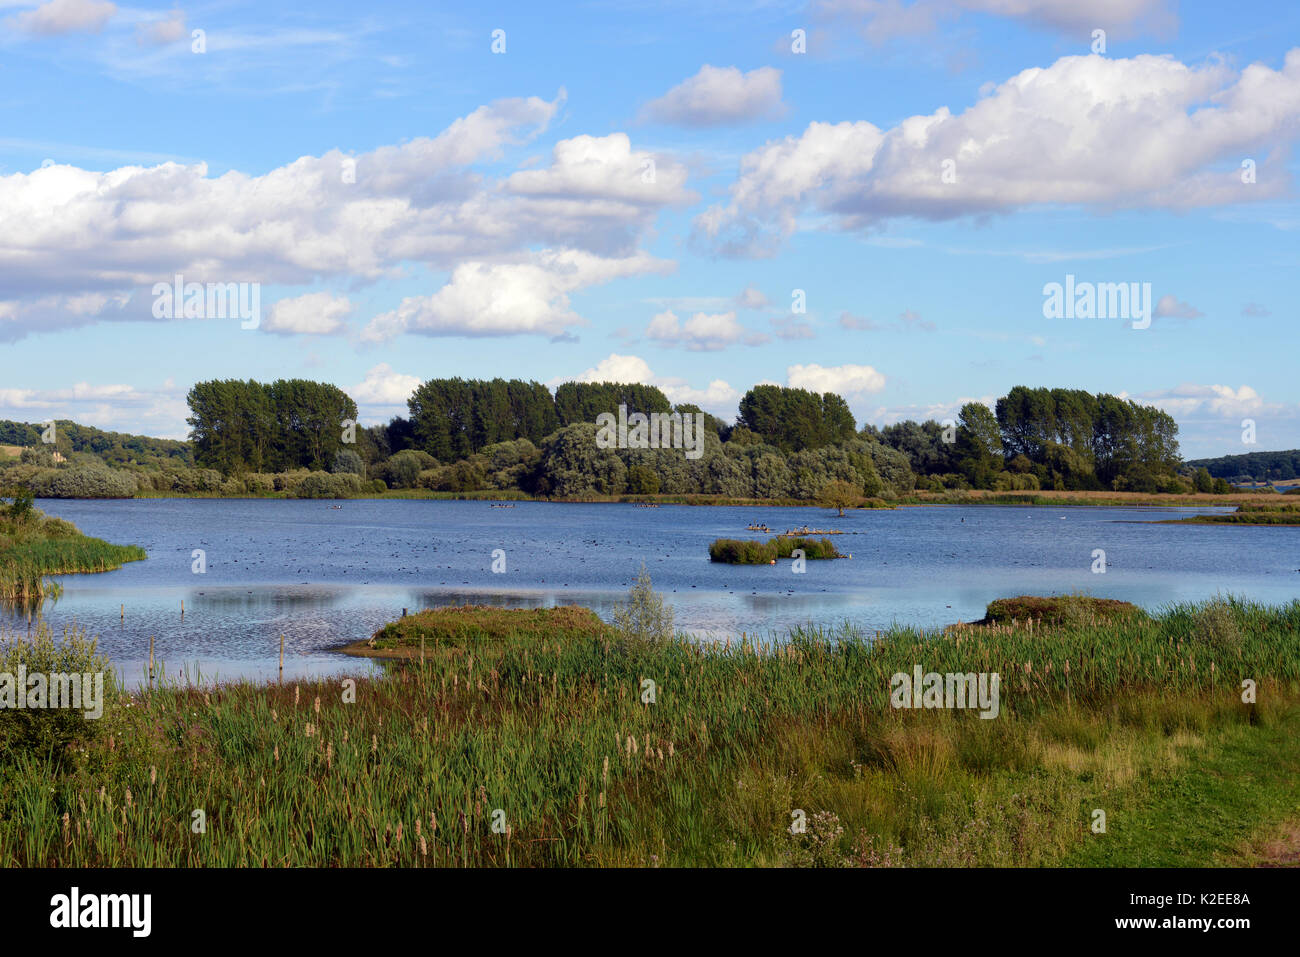 View of Rutland Water Nature Reserve, RAMSAR site, Special Protection Area and Site of Special Scientific Interest, August 2016, Egleton, Rutland, England. - Stock Image